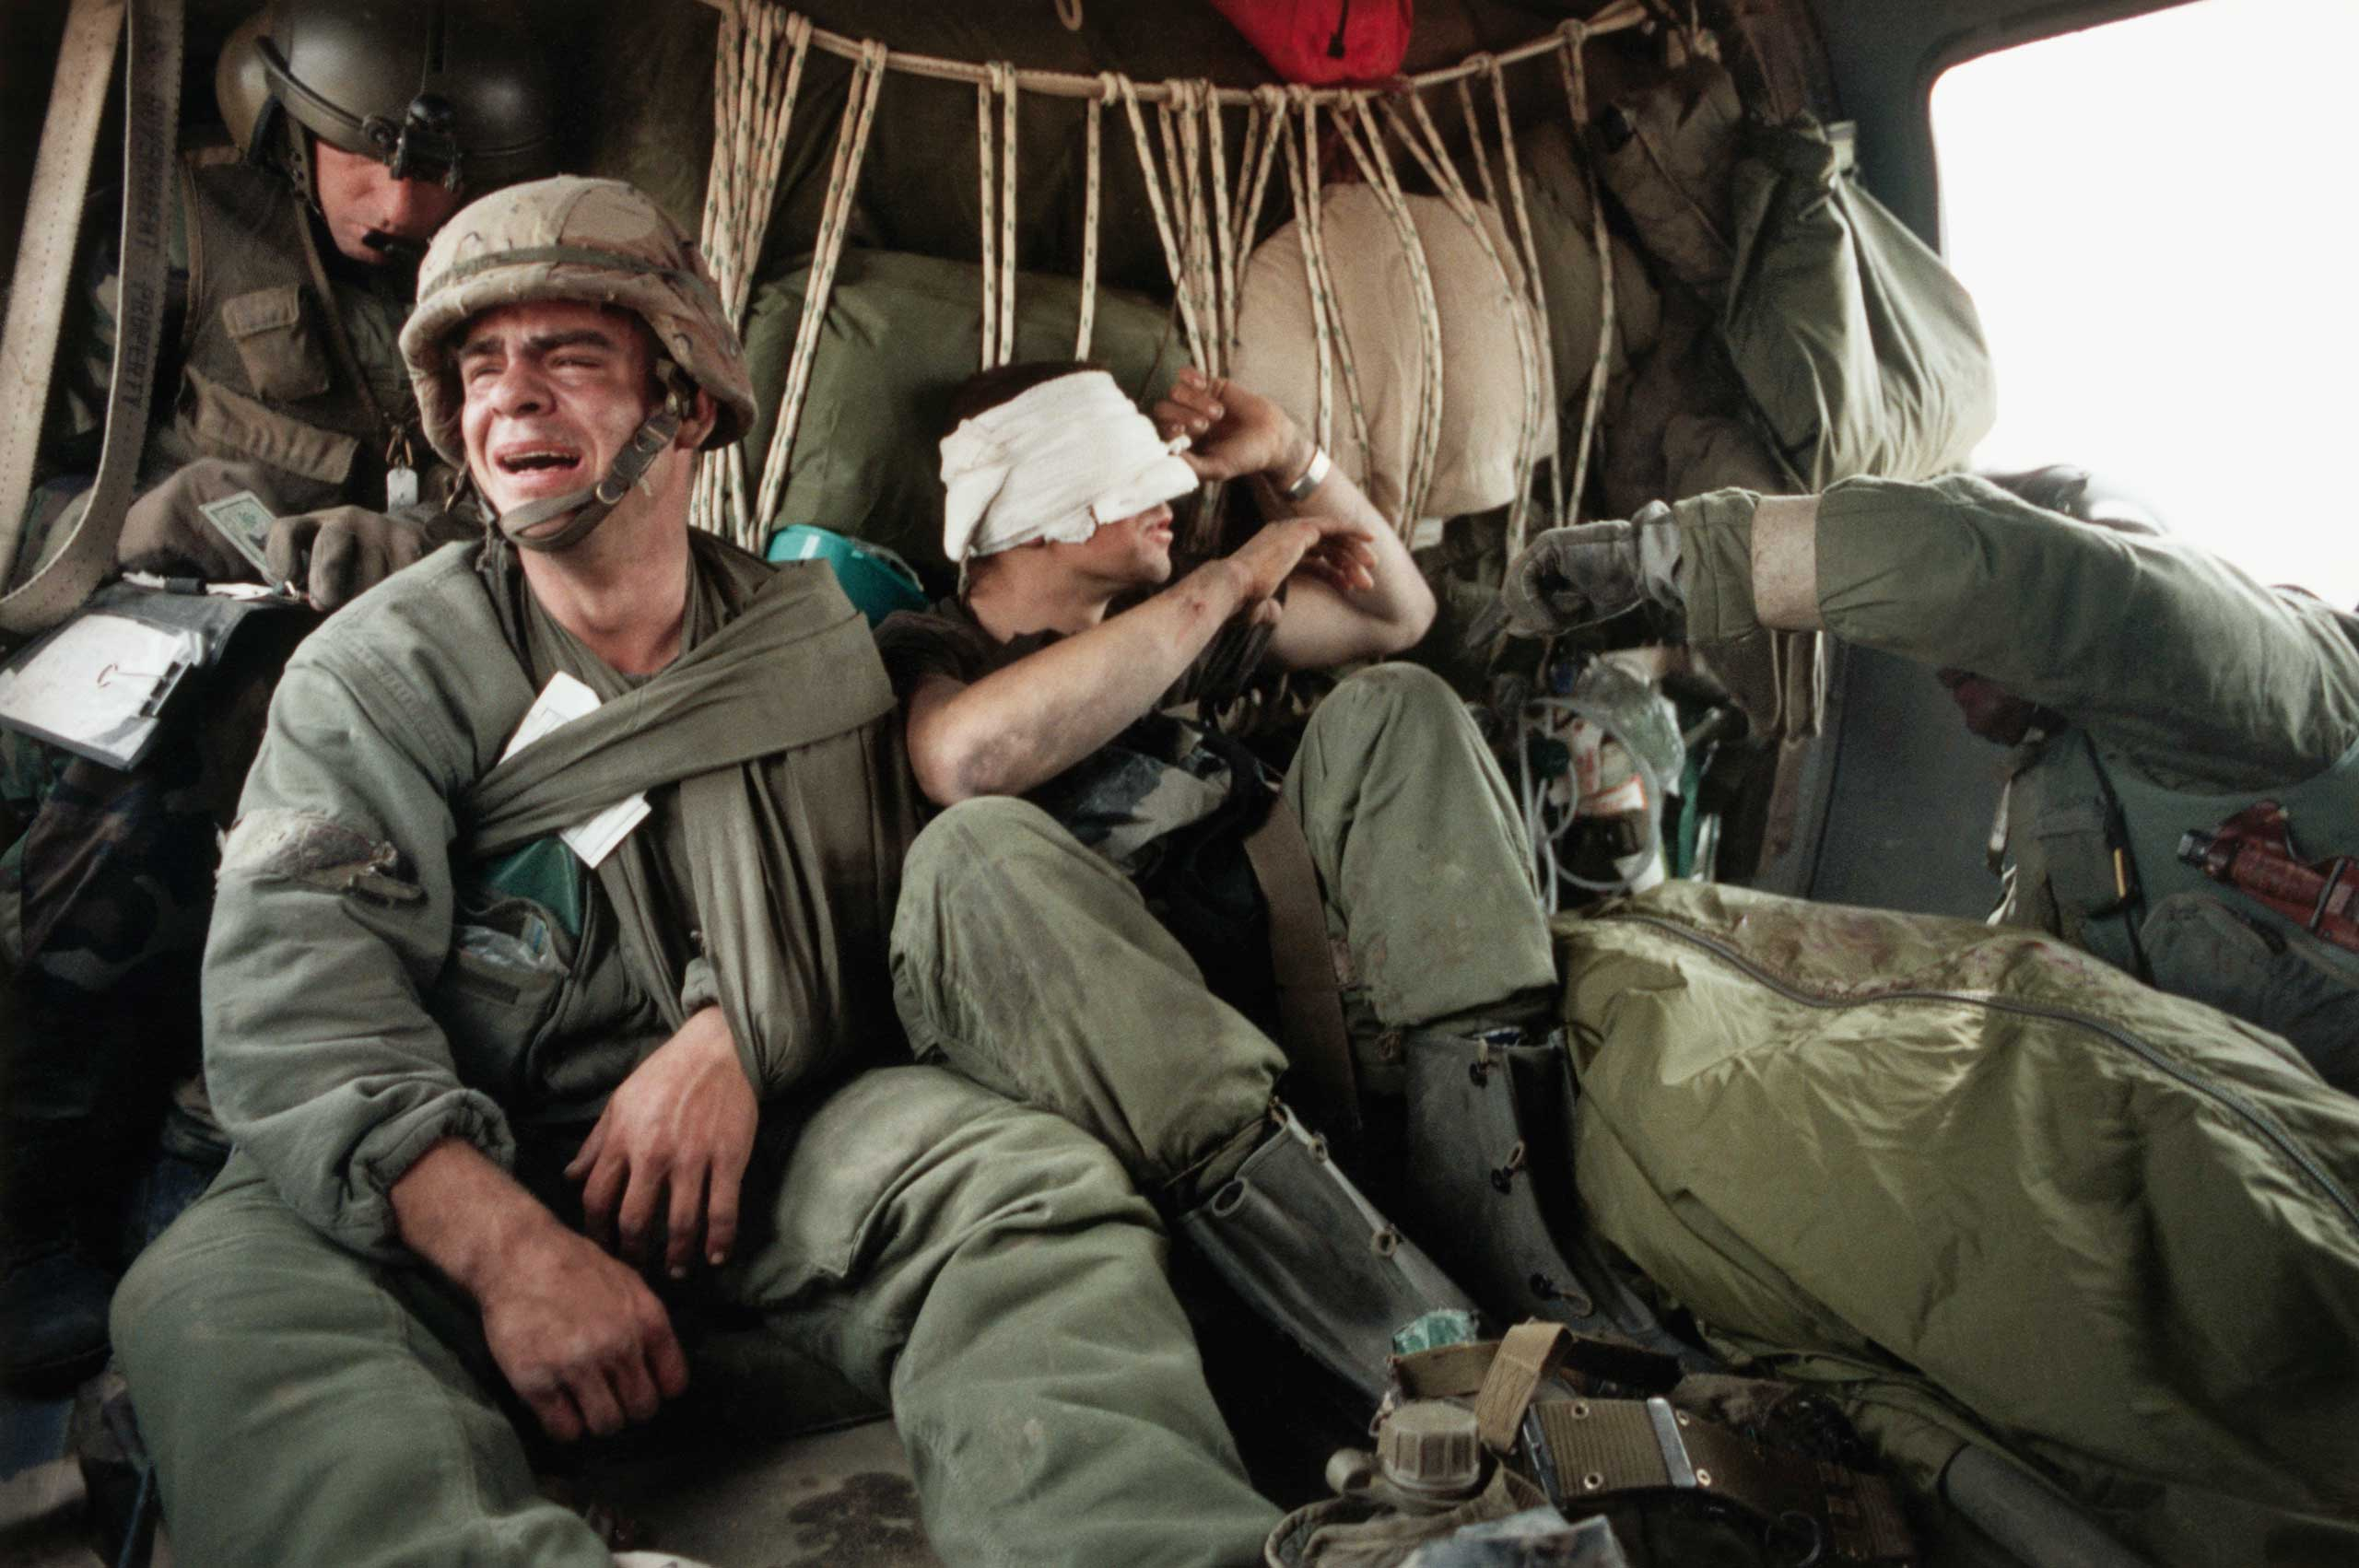 Ken Kozakiewicz (left) breaks down in an evacuation helicopter after hearing that his friend, the driver of his Bradley Fighting Vehicle, was killed in a  friendly fire  incident that he himself survived. All of the soldiers were exposed to depleted uranium as a result of the explosion. They and the body of the dead man are on their way to a MASH (Mobile Army Surgical Hospital). Iraq, 1991.